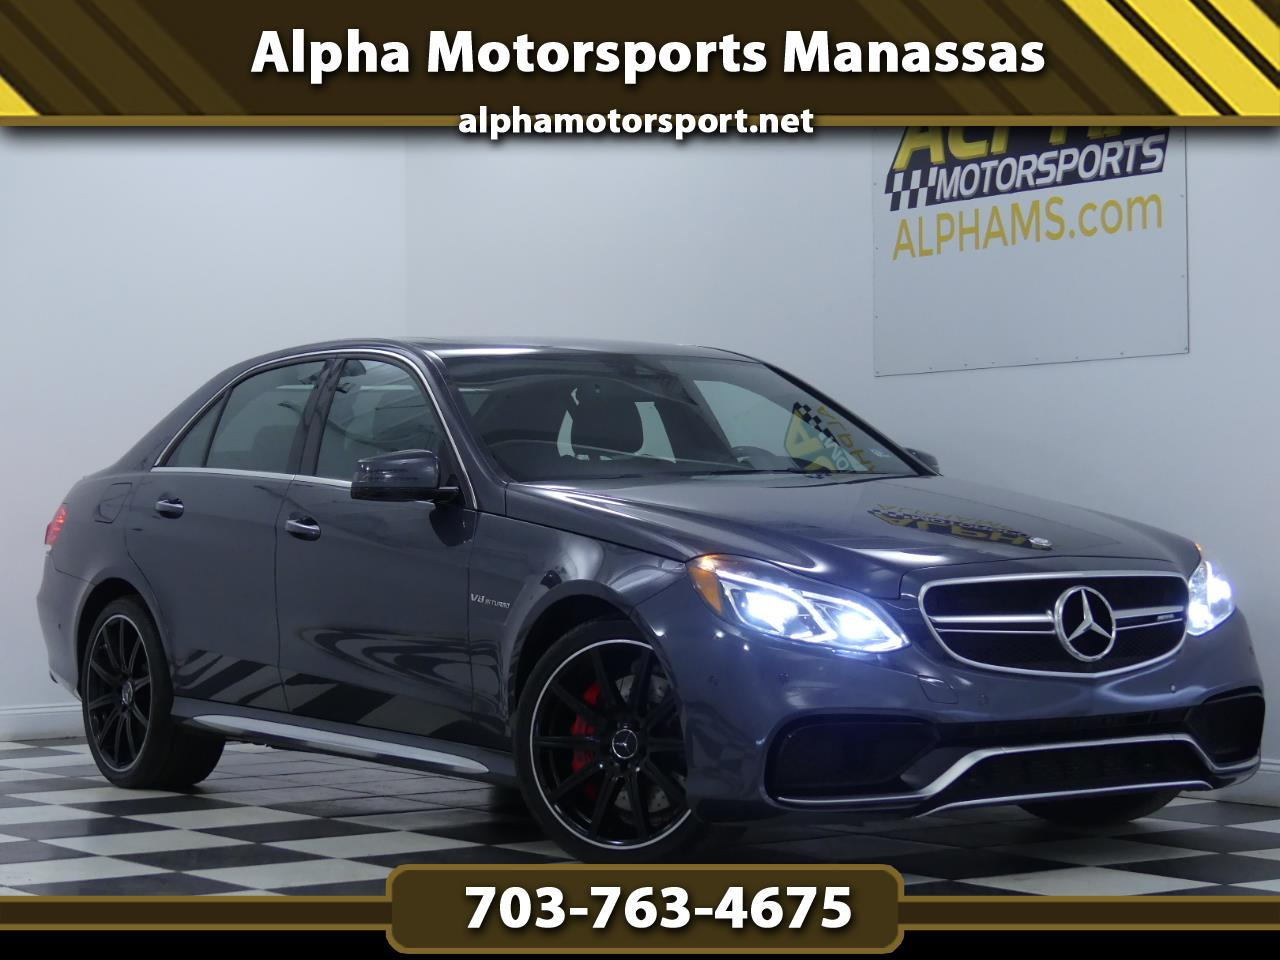 2015 Mercedes-Benz E-Class E63 AMG 4MATIC S-Model Sedan